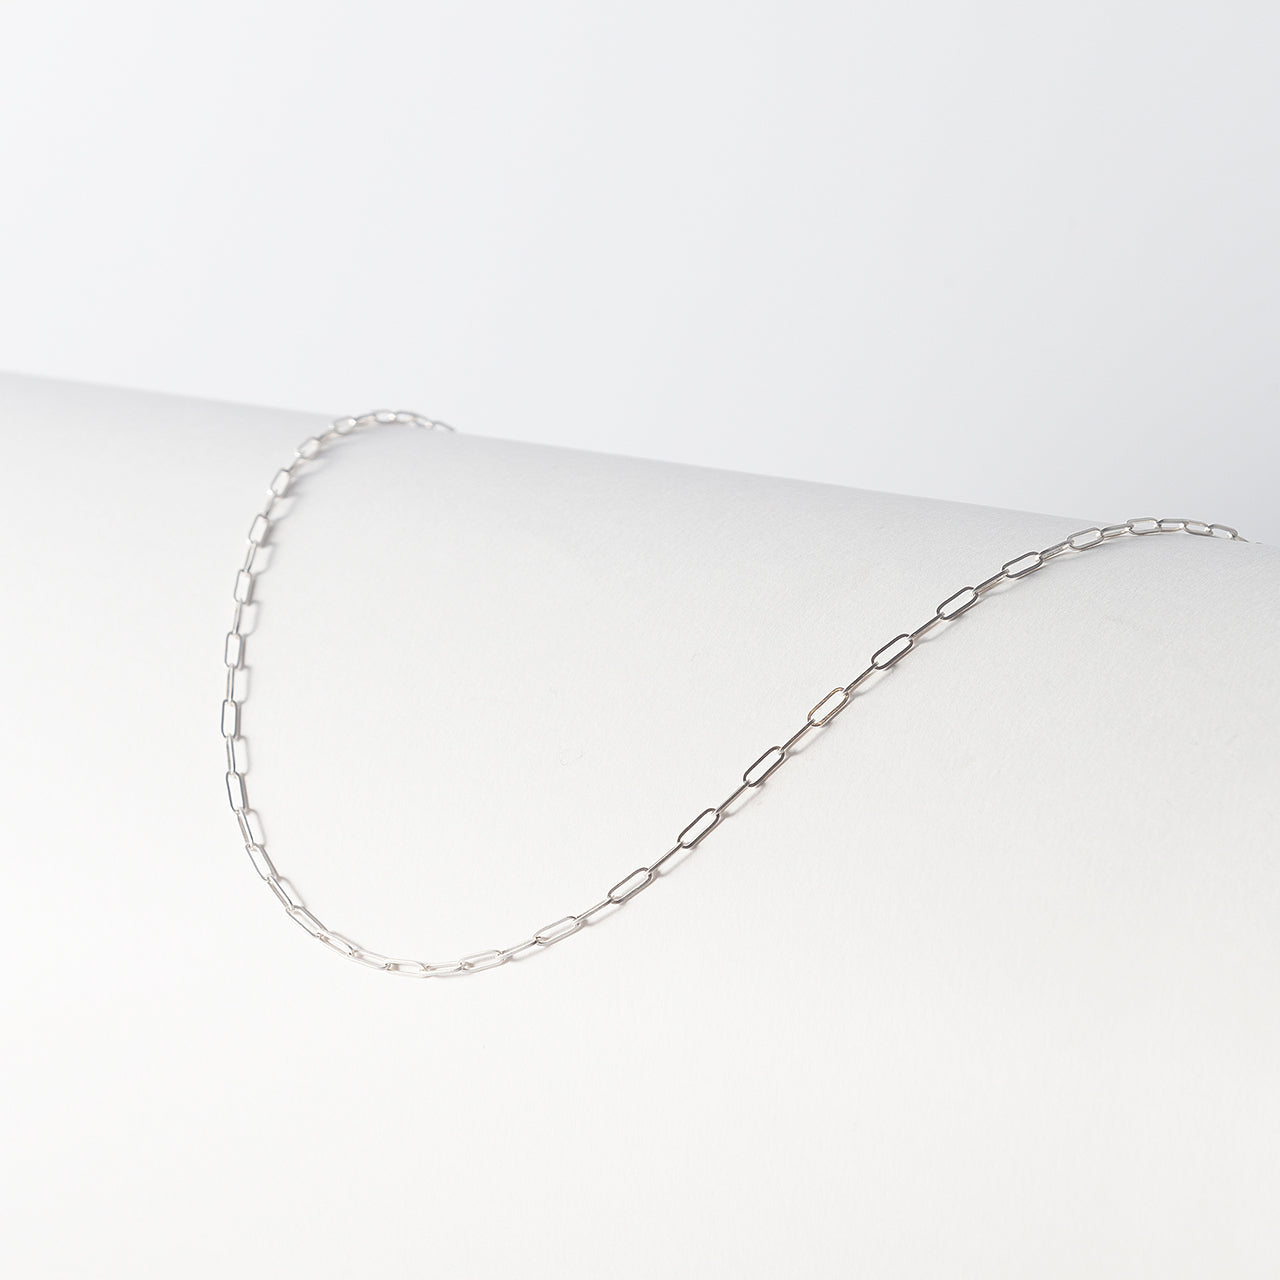 ITDA NECKLACE (SILVER) - KNOK STORE